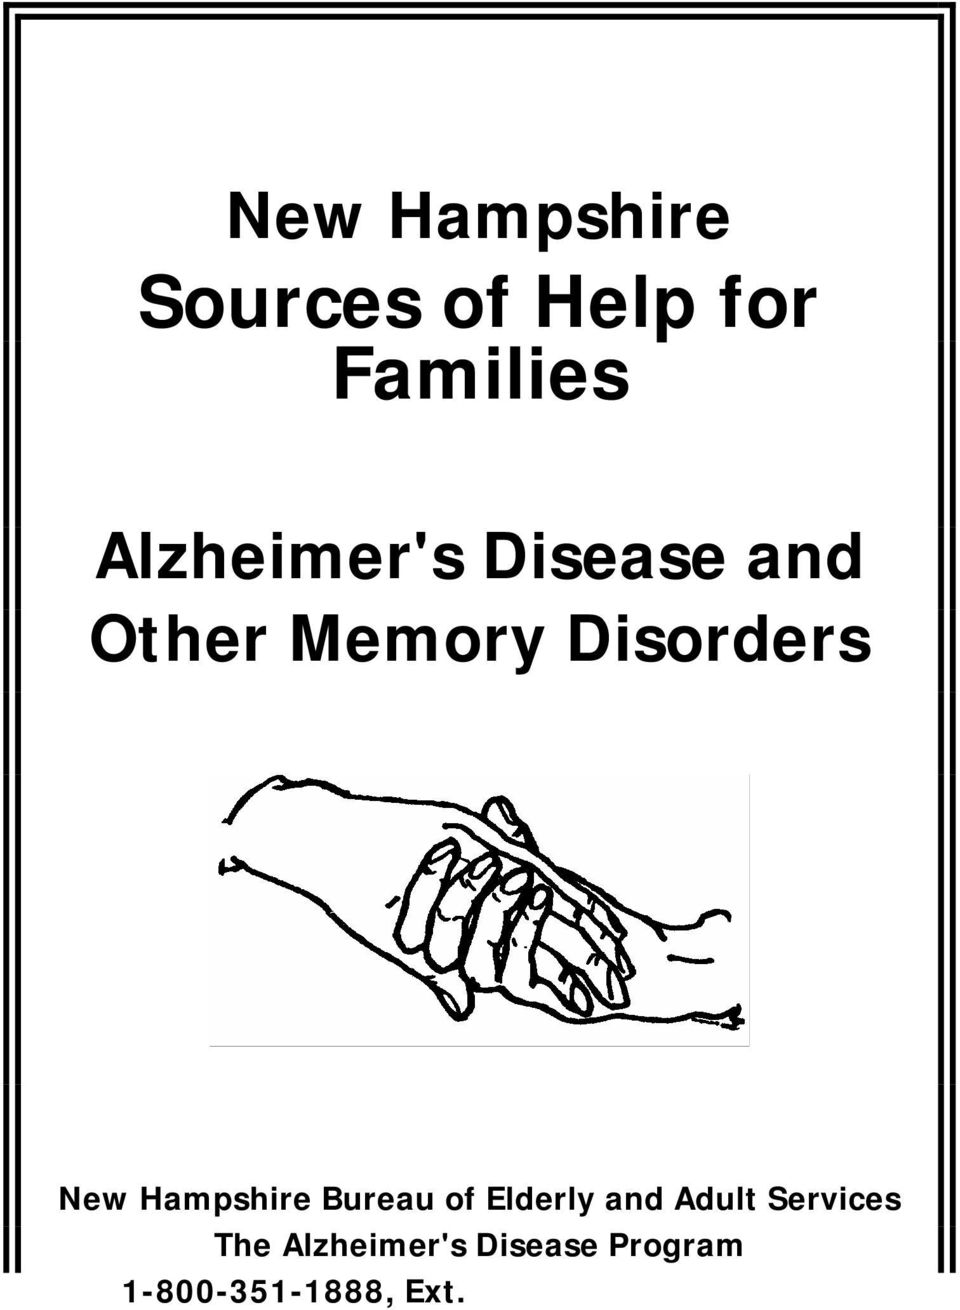 Elderly and Adult Services The Alzheimer's Disease Program